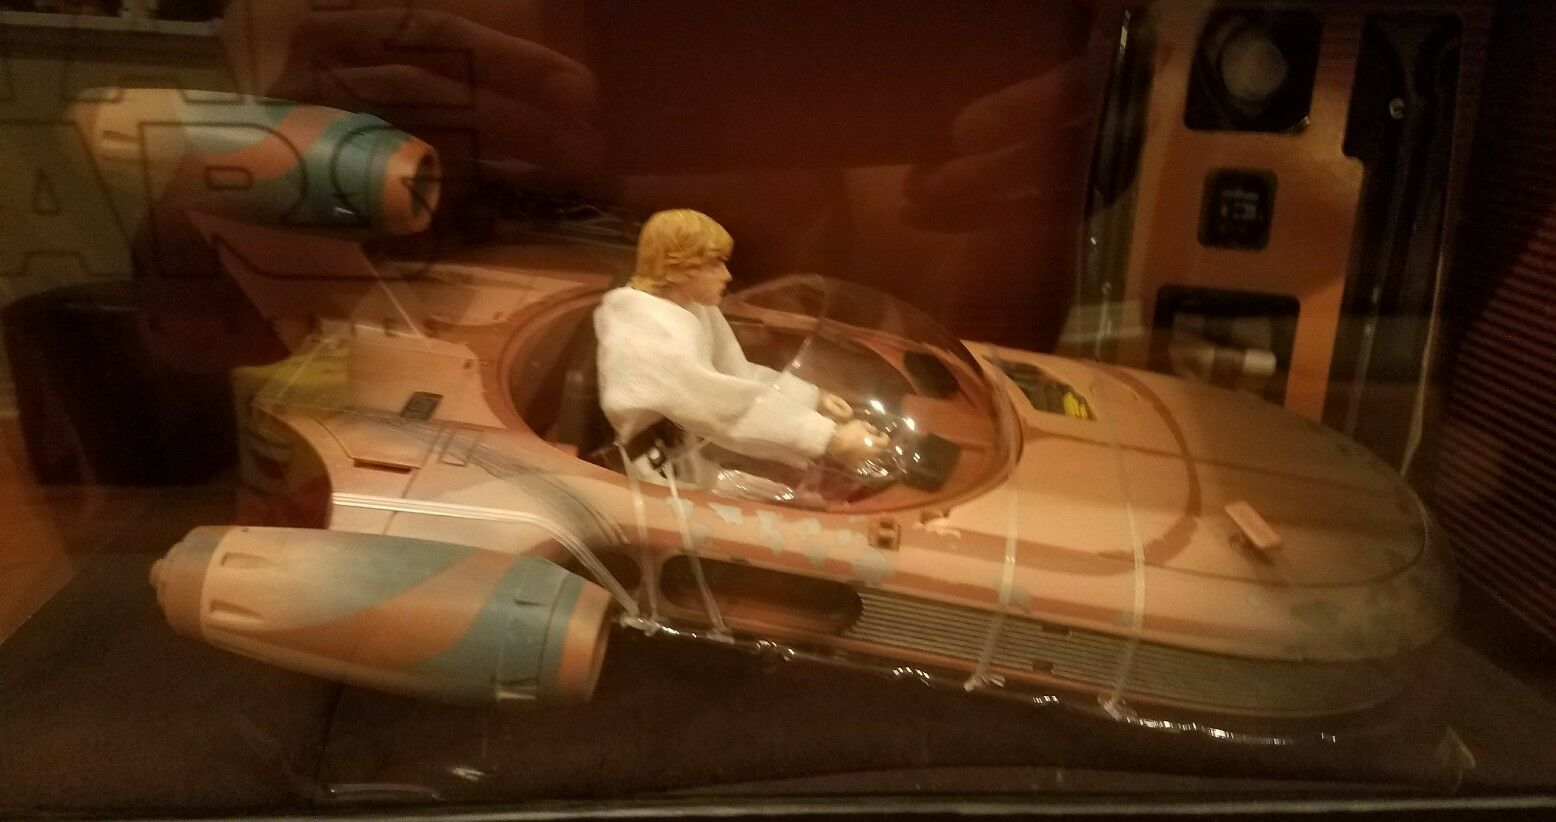 SDCC 2017 Hasbro Star Wars Luke Skywalker Landspeeder X-34